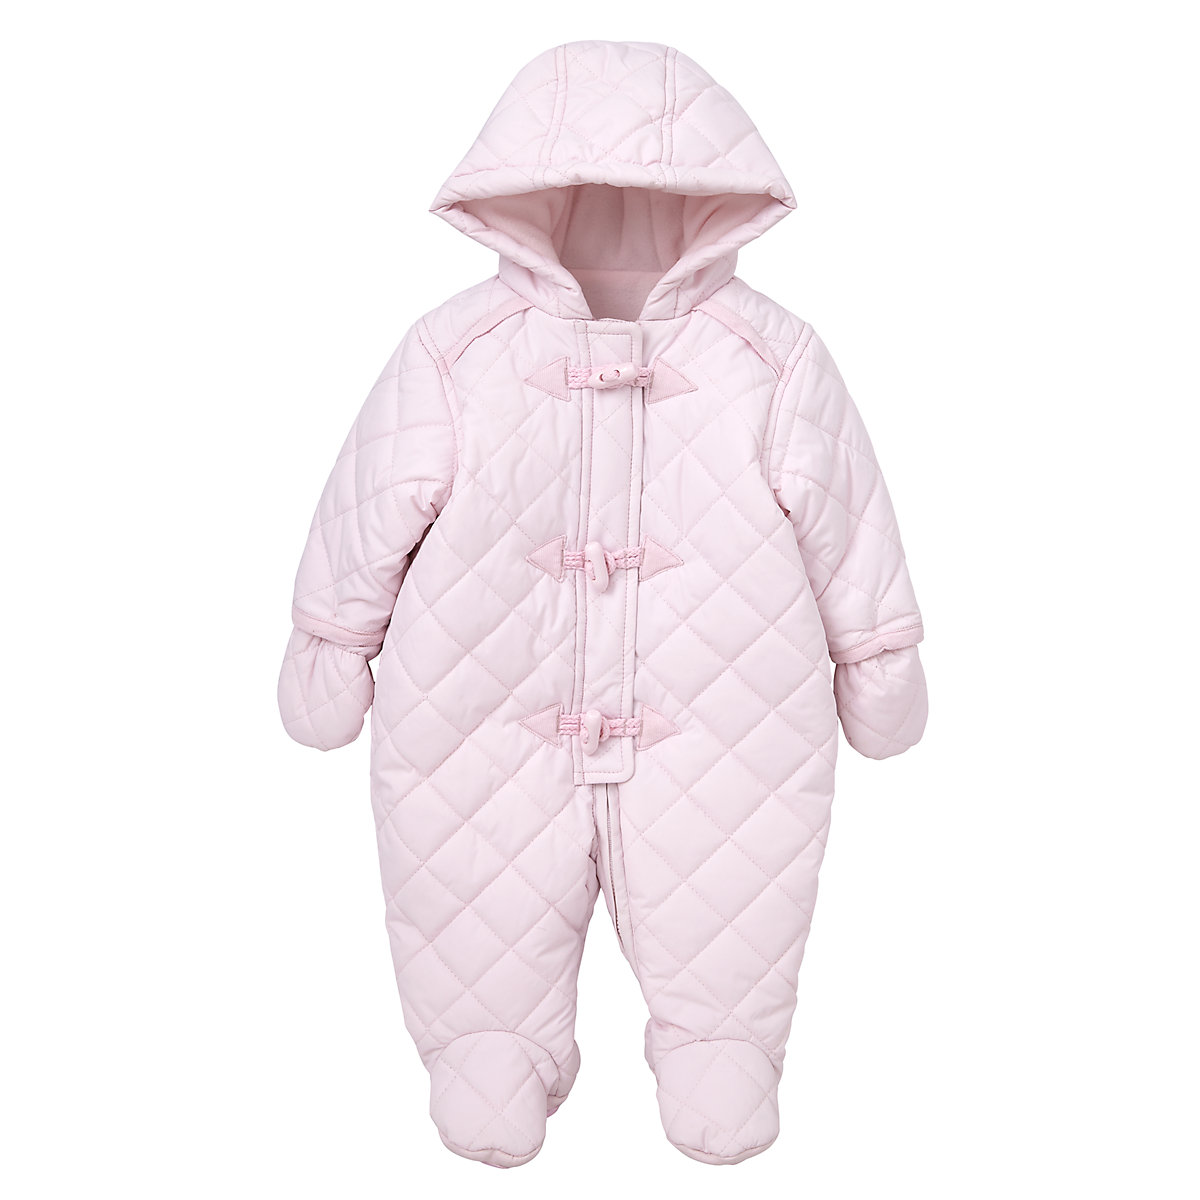 Shop for baby snowsuit online at Target. Free shipping on purchases over $35 and save 5% every day with your Target REDcard.